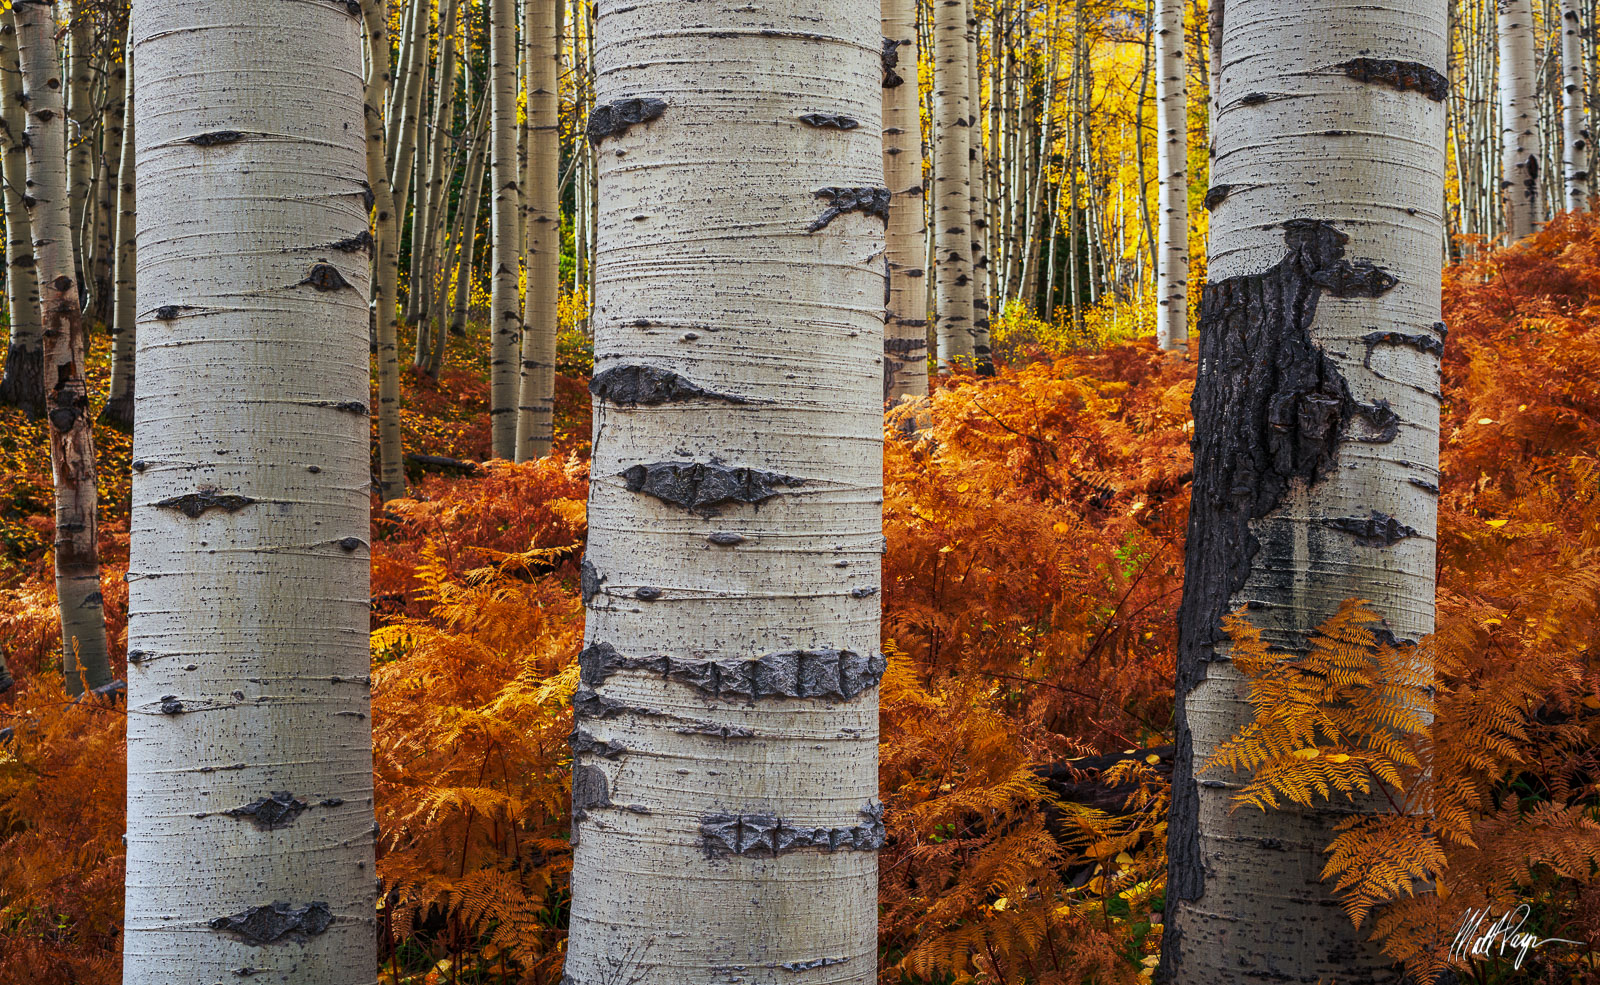 Aspen Trees, Autumn, Bark, Colorado, Fall, Fall Colors, Ferns, Landscape, Rust, Three, West Elk Mountains, photo